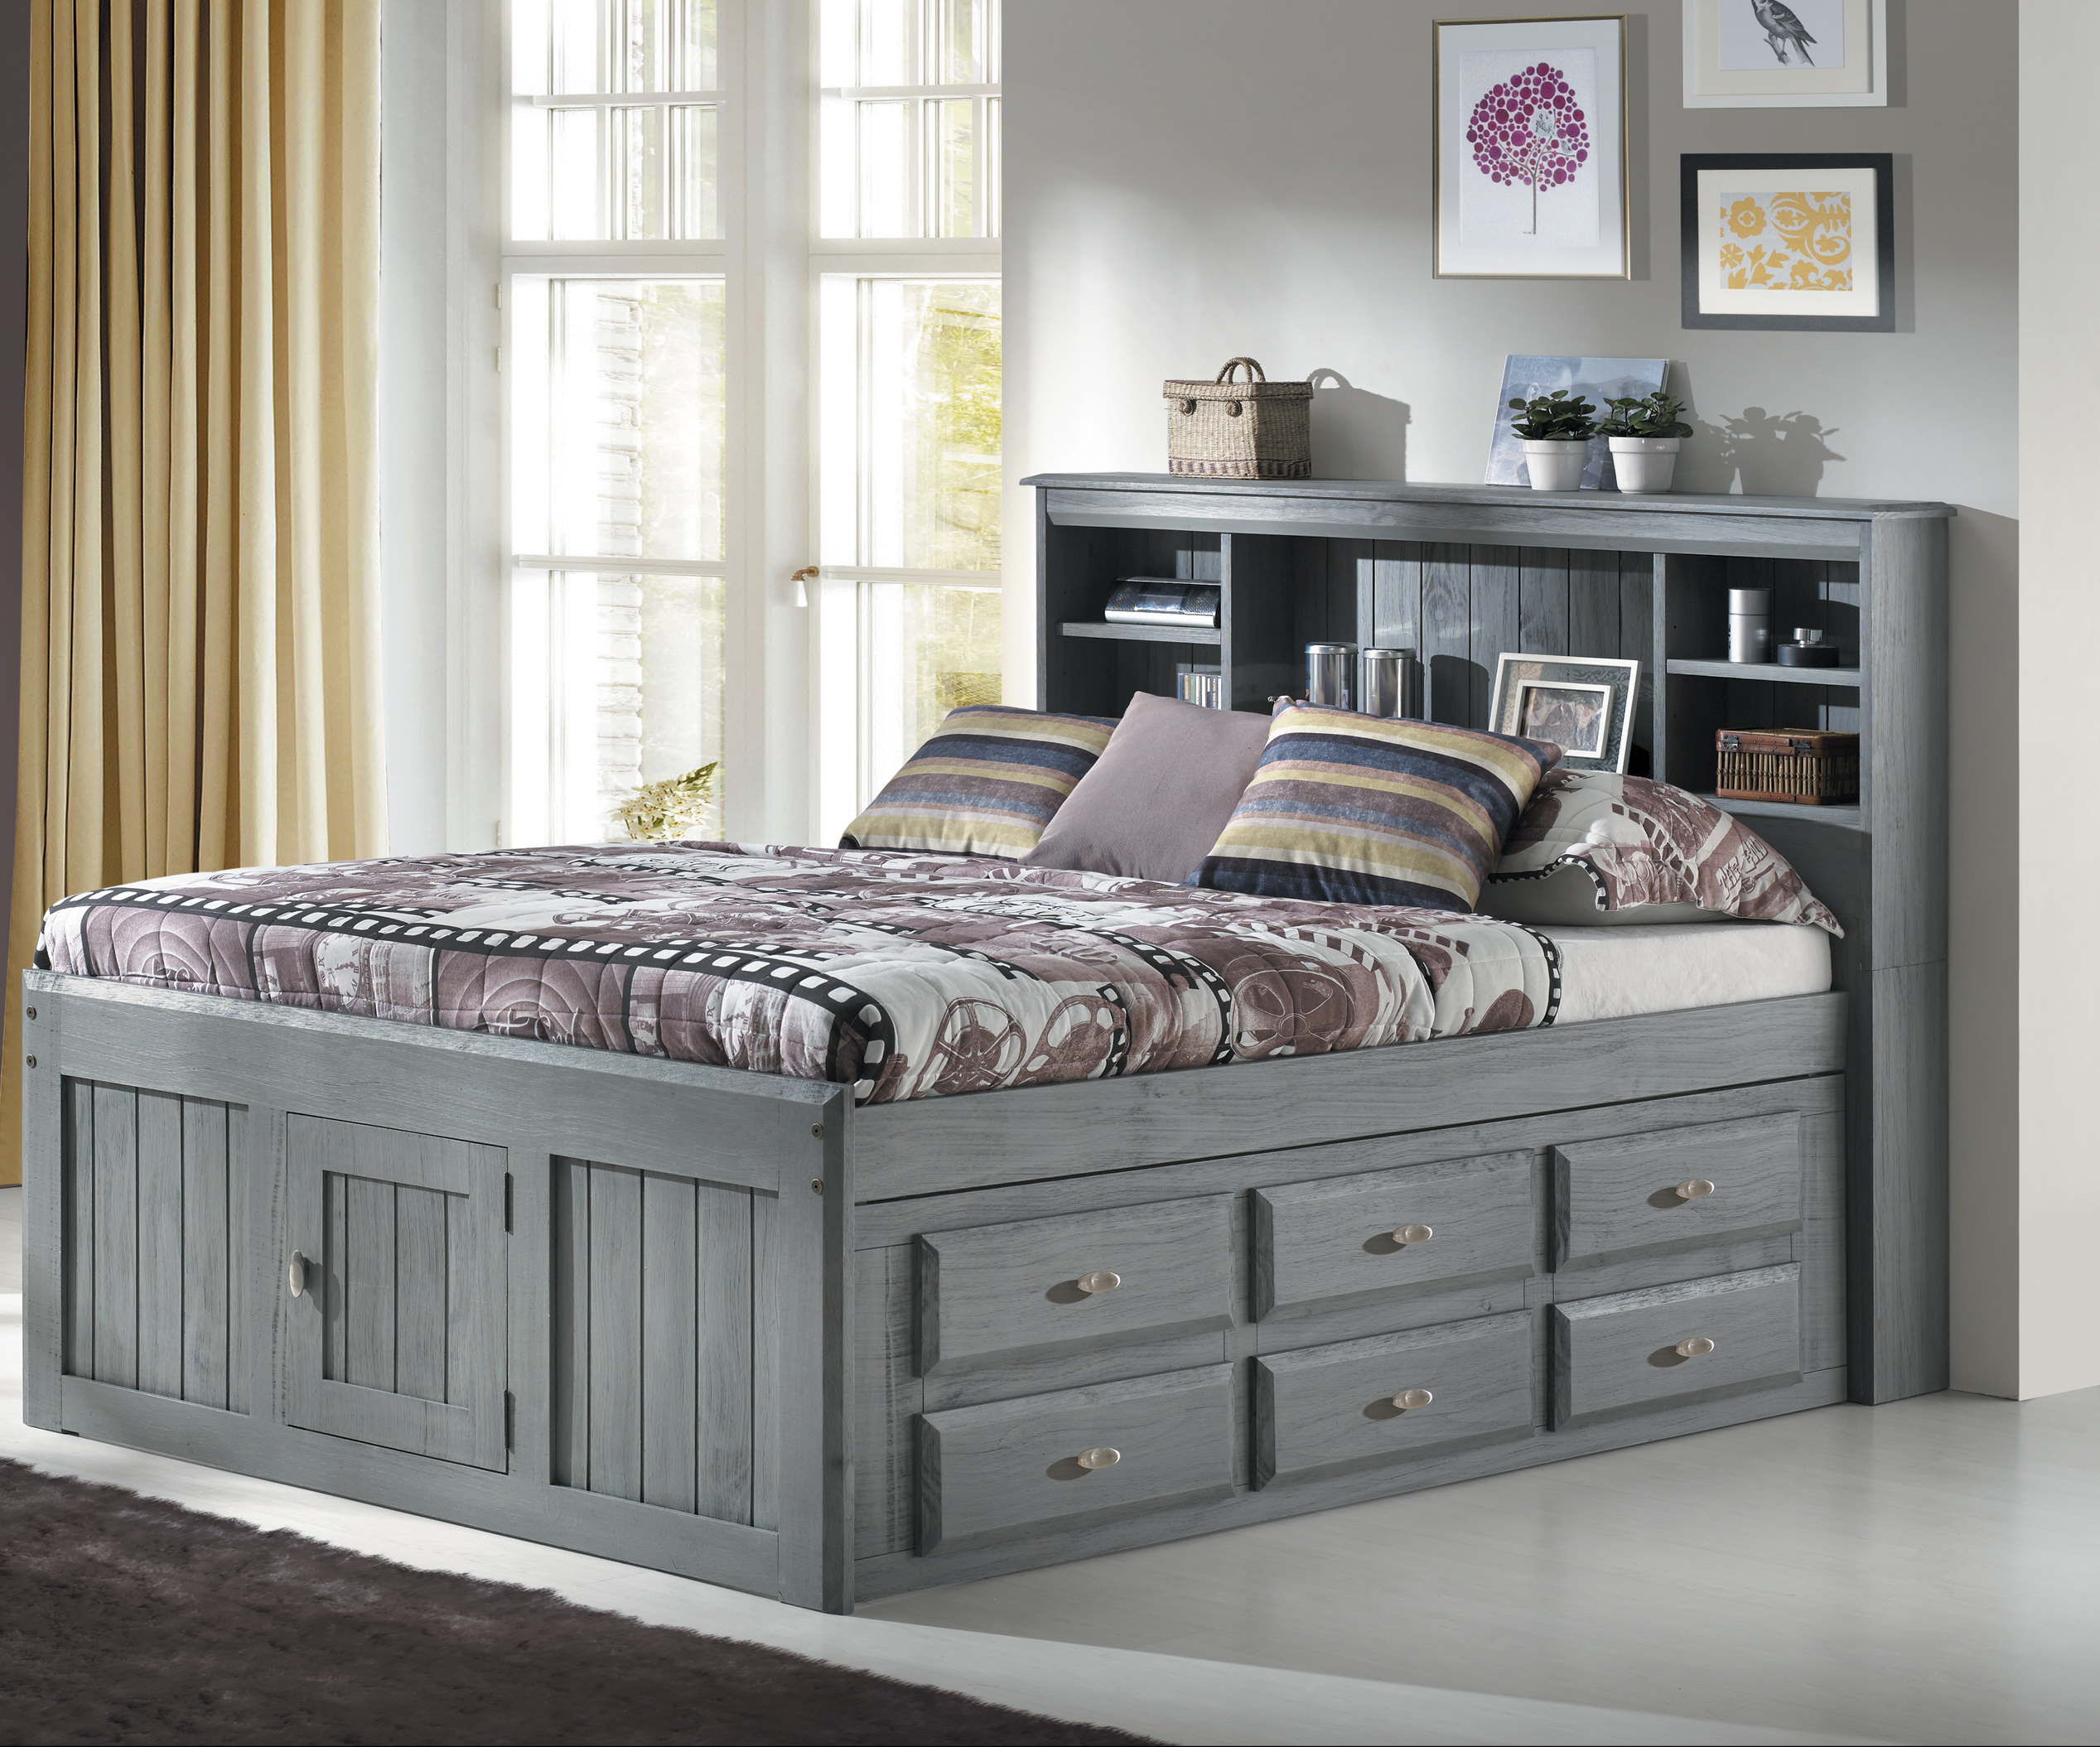 American Furniture Classics Solid Pine Full Captains Bookcase Bed With 6 Drawers In Charcoal